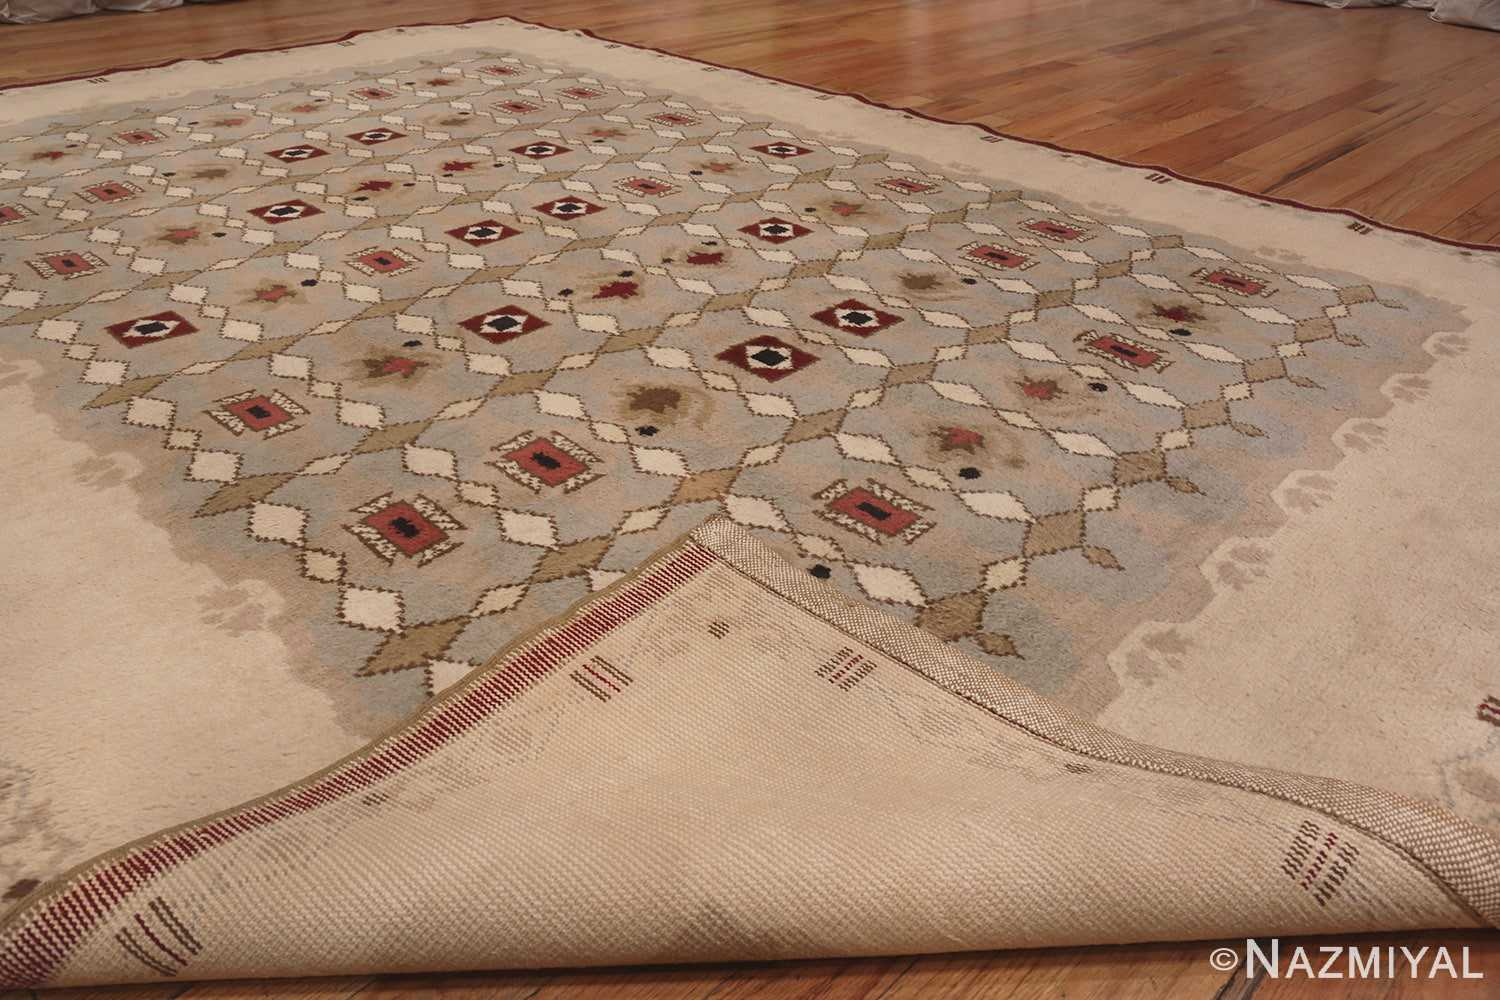 Image of Antique French Art Deco Leleu Rug #70027 from the collection of Nazmiyal Antique Rugs NYC